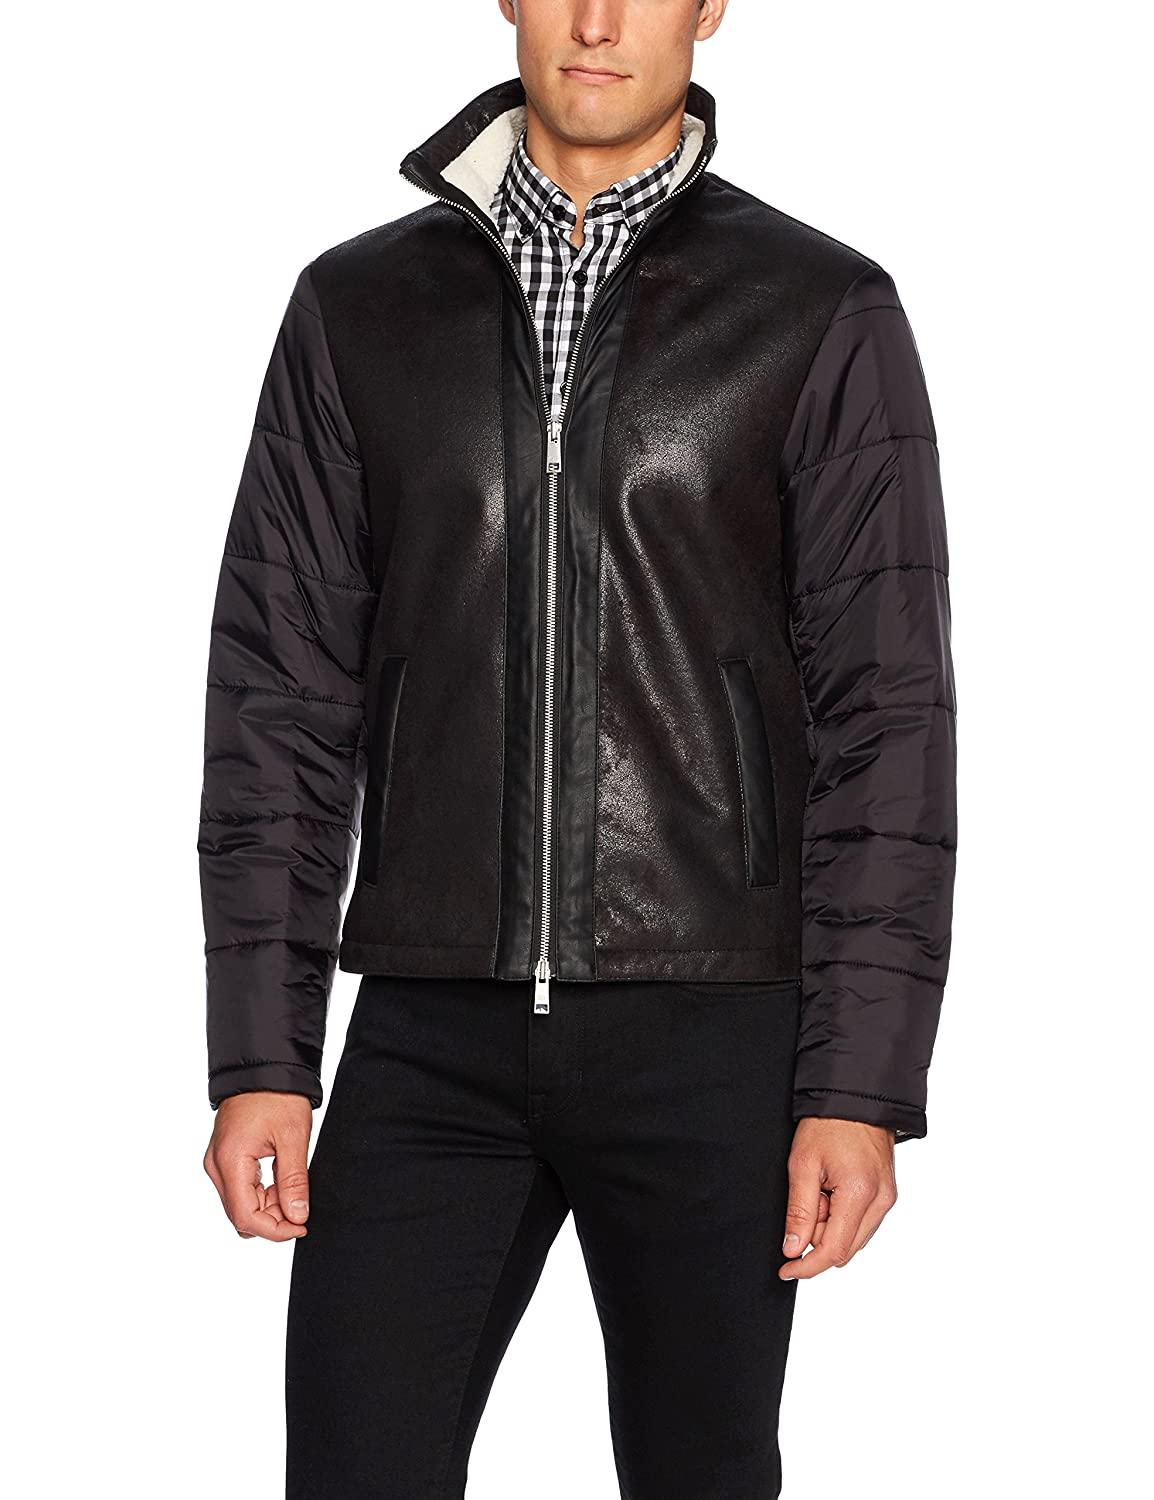 A|X Armani Exchange Men's Eco Leather Front Jacket with Quilted Nylon Sleeves 6YZB38ZN64Z